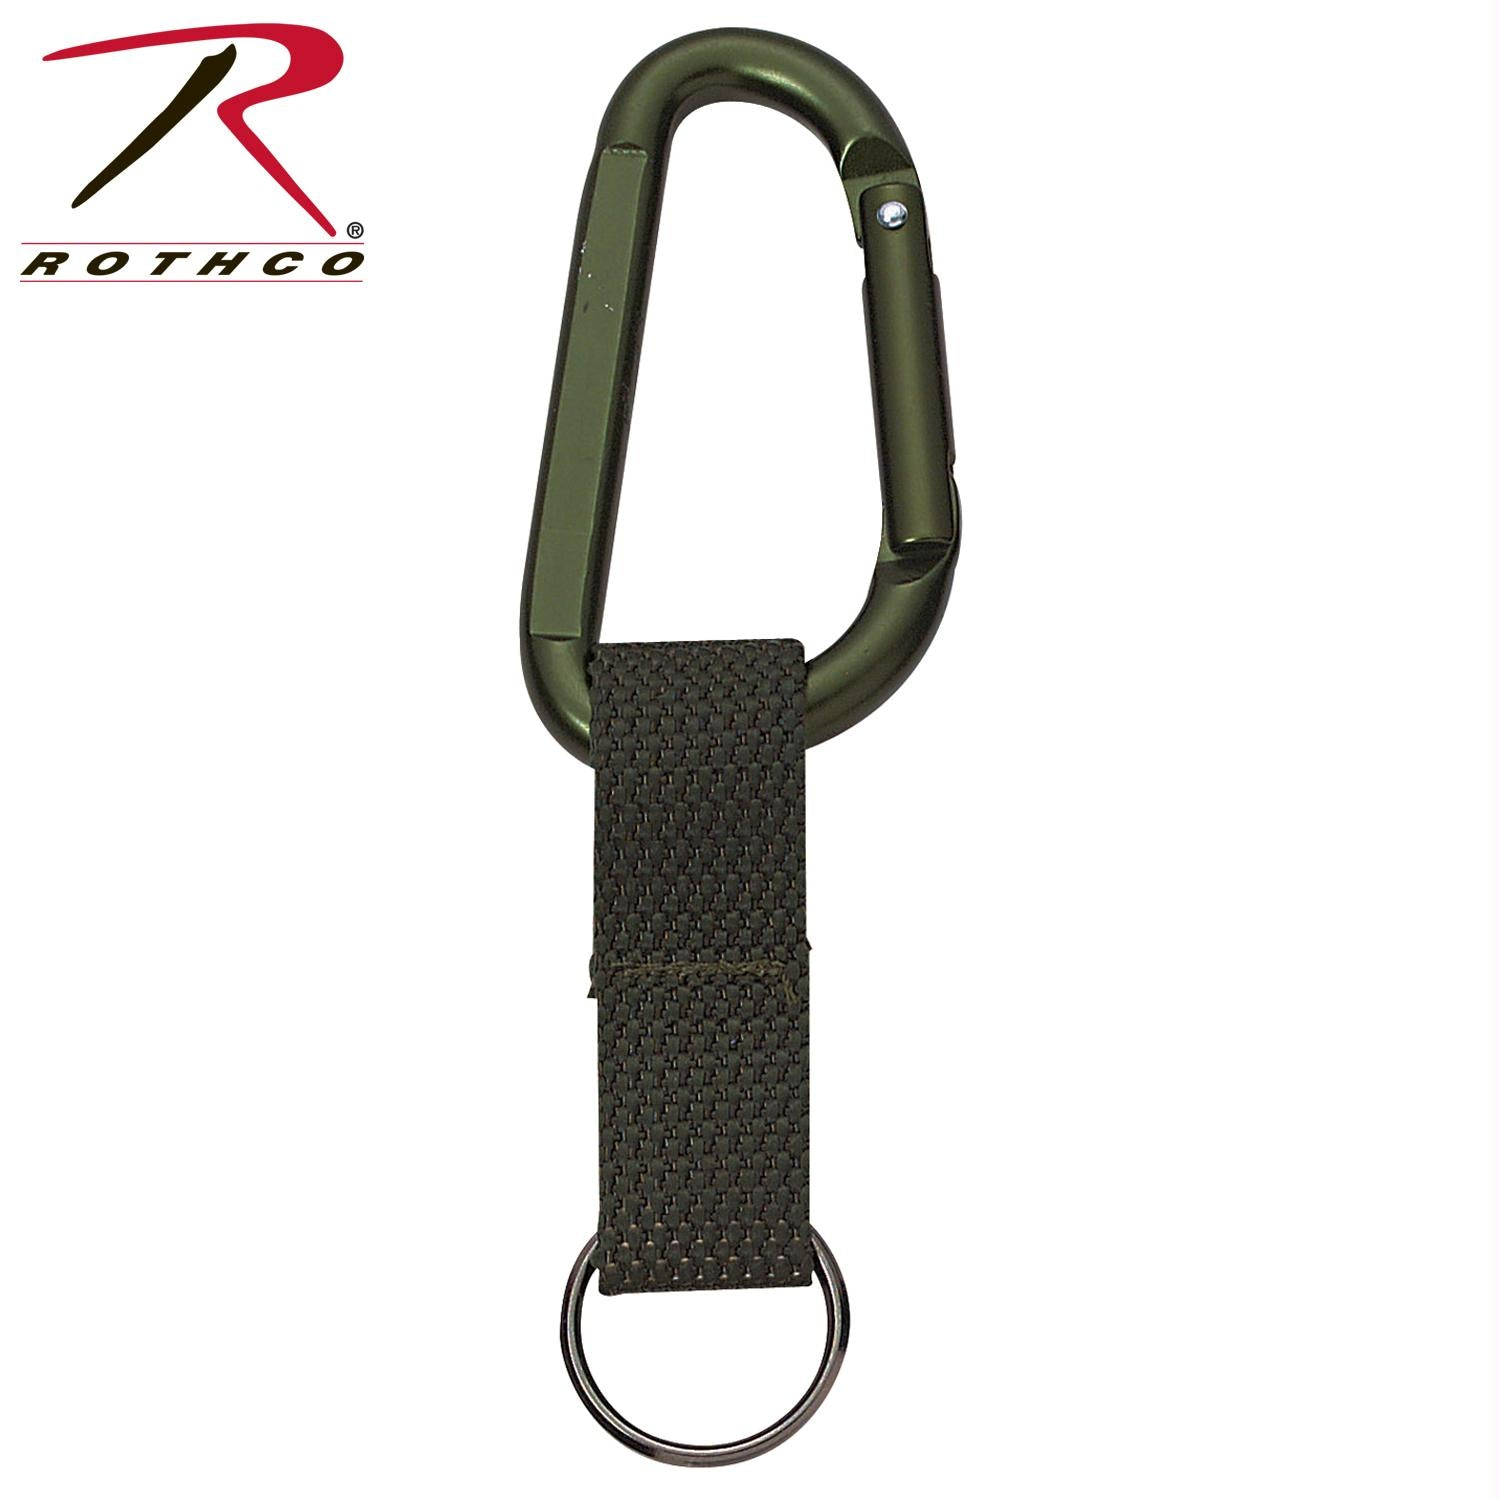 Rothco Jumbo 80MM Carabiner With Web Strap Key Ring - Olive Drab